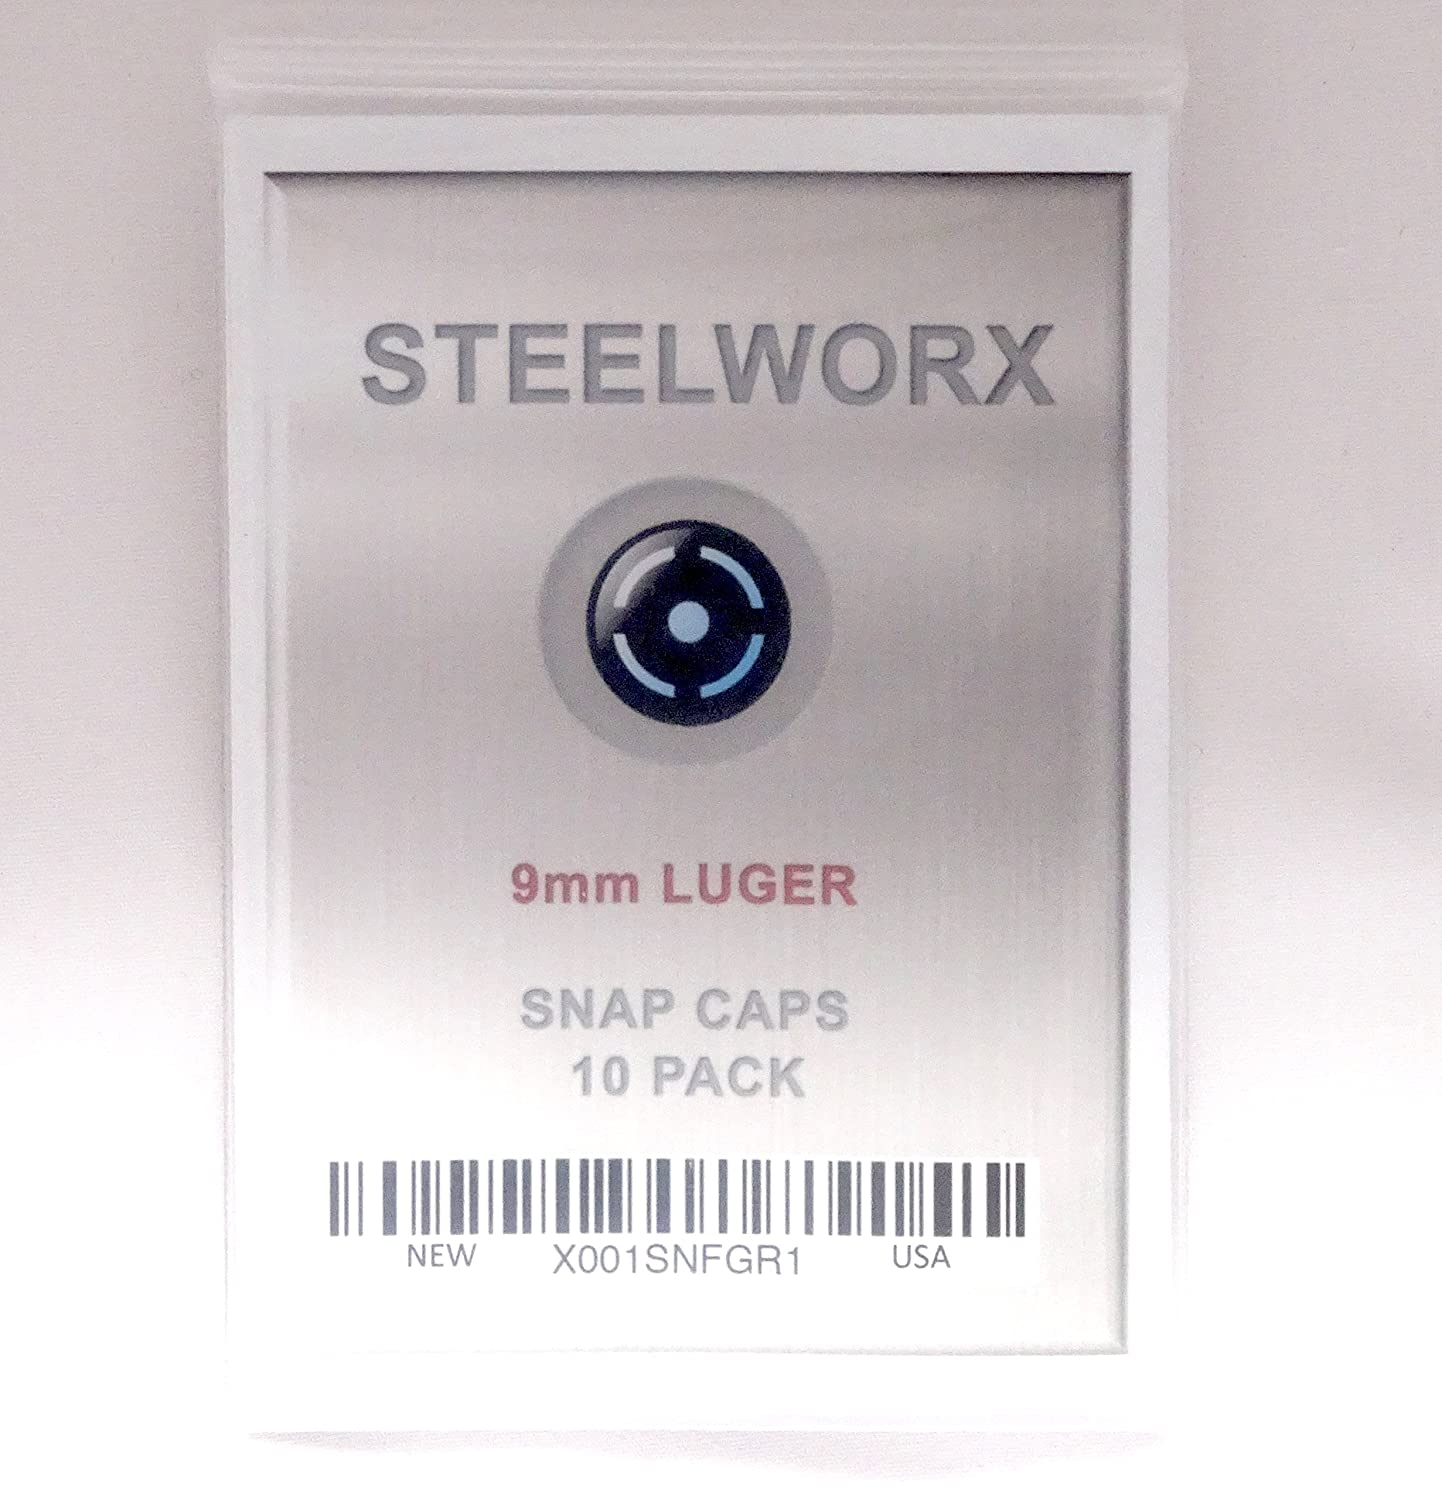 Amazon.com: Steelworx 9 mm. Luger acero inoxidable Snap Caps ...